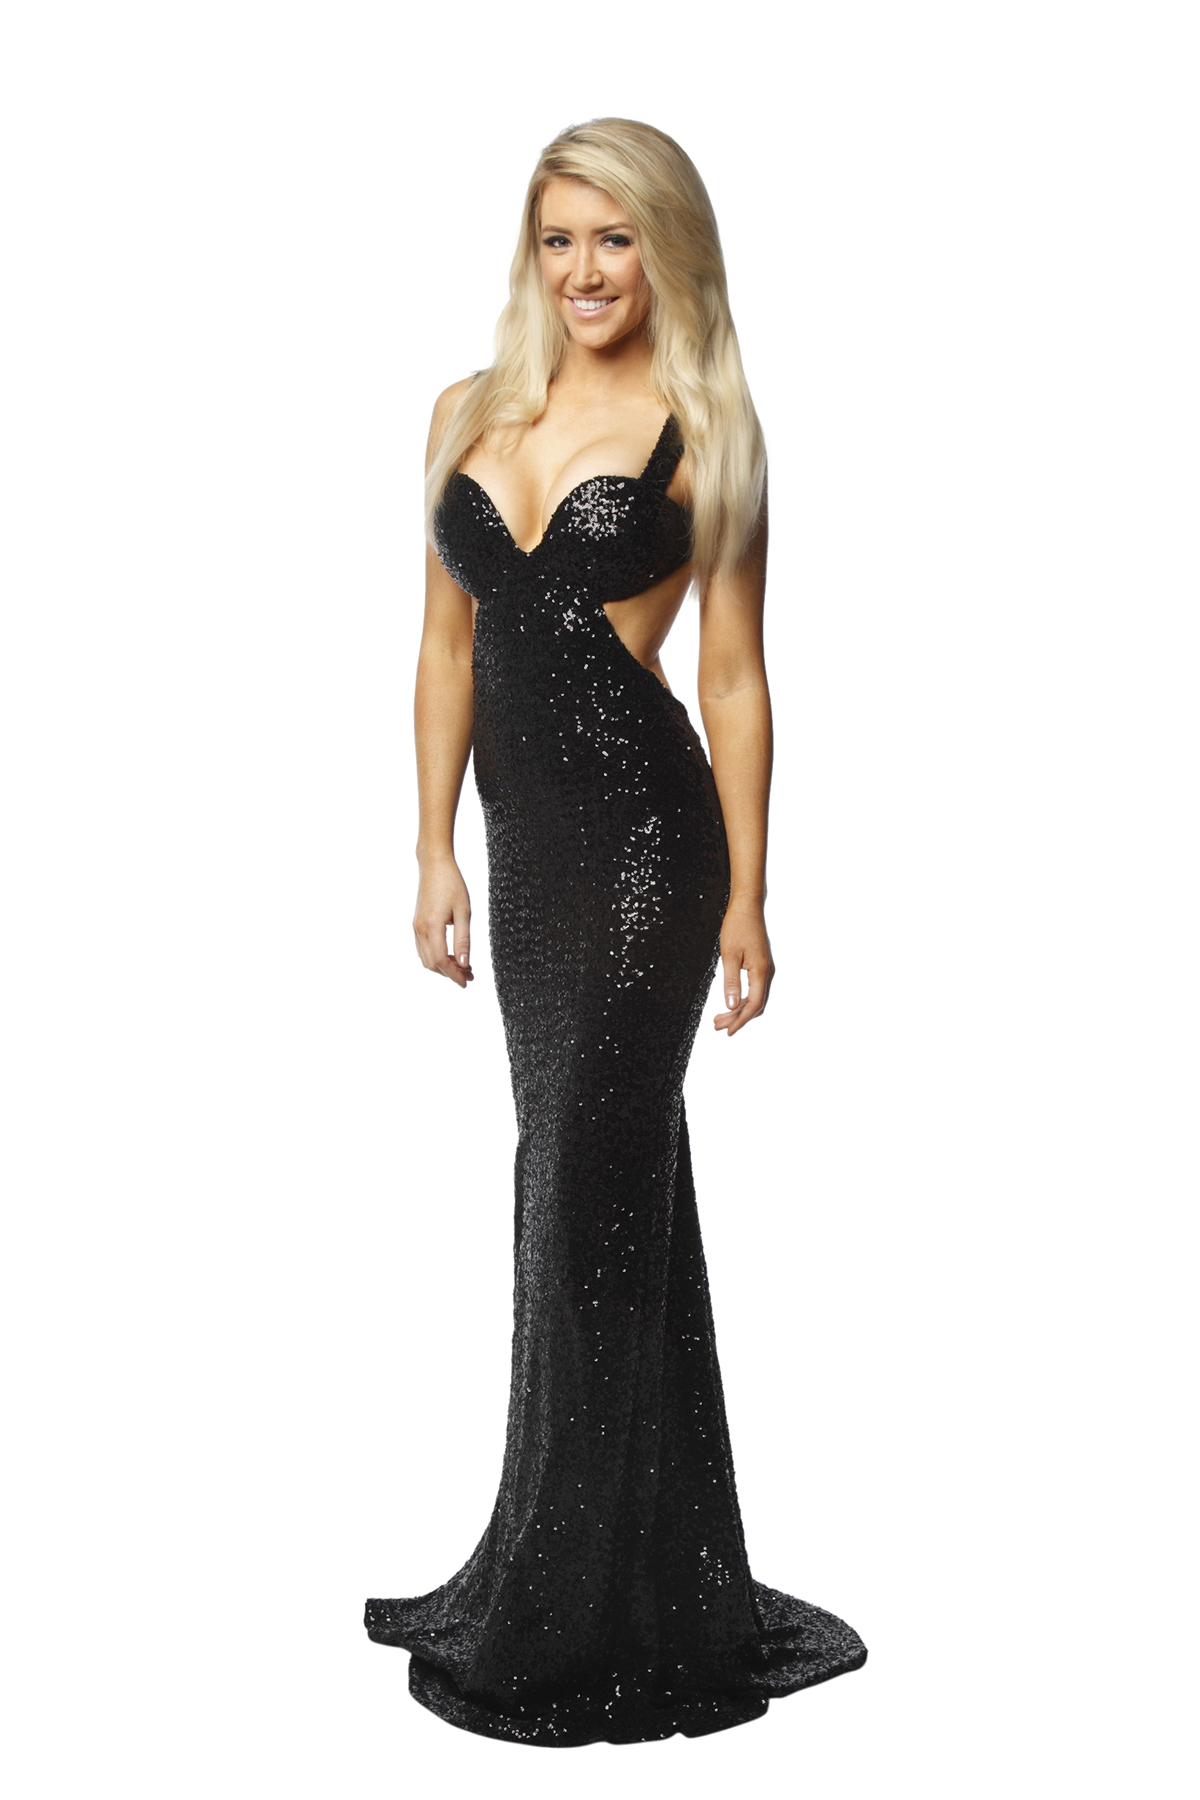 Portia & Scarlett Backless Black Sequin Gown - Perth Dress Hire - My ...